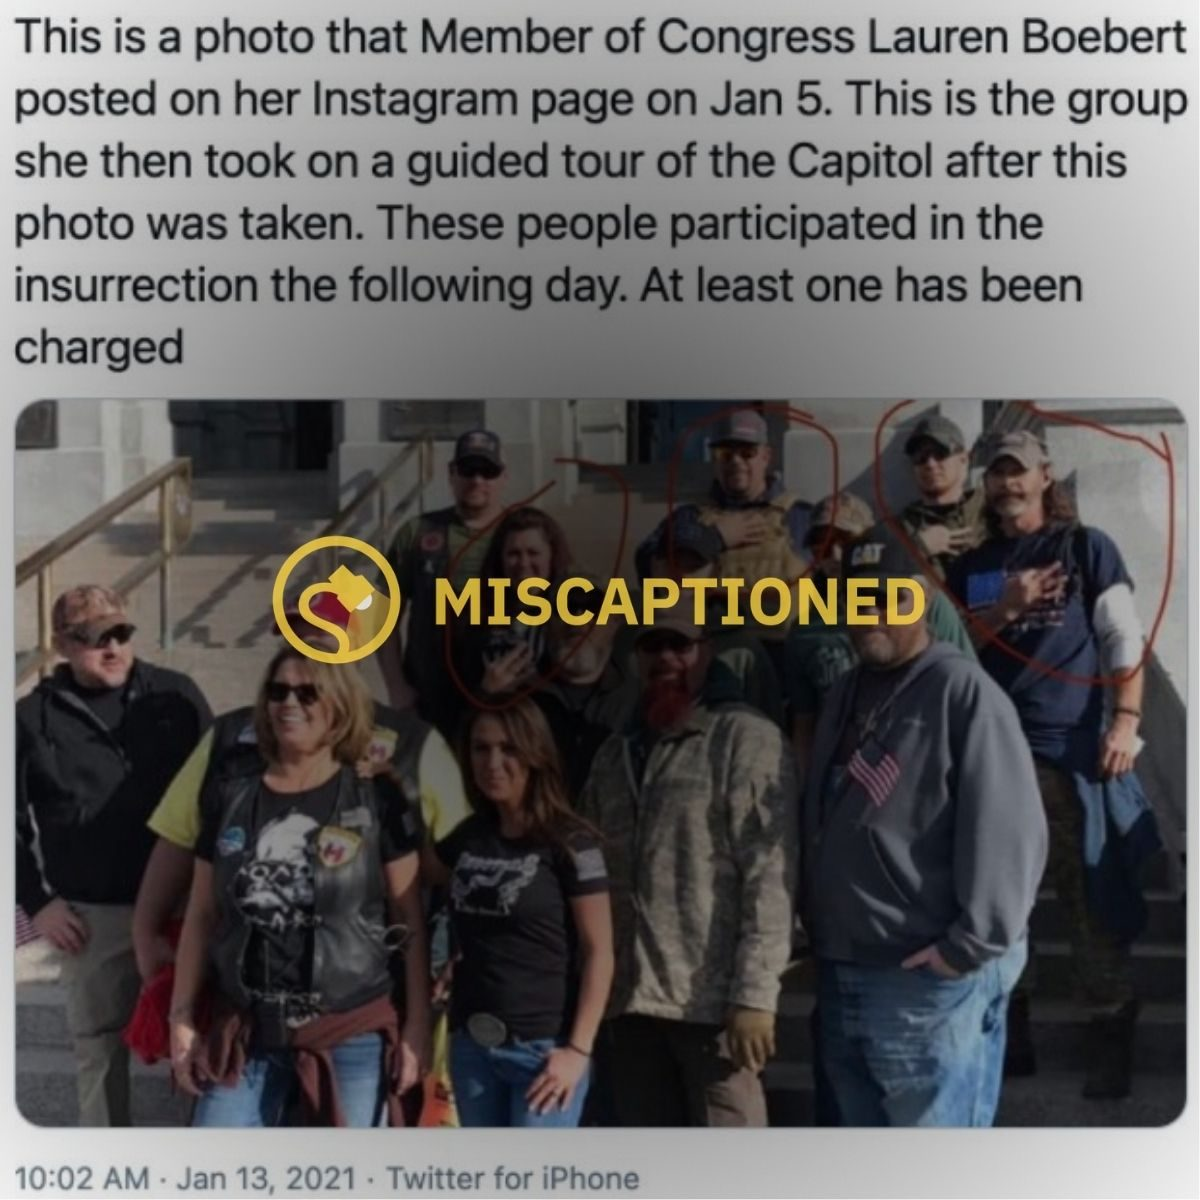 Does a Photo Show Rep. Boebert With Insurrectionists...